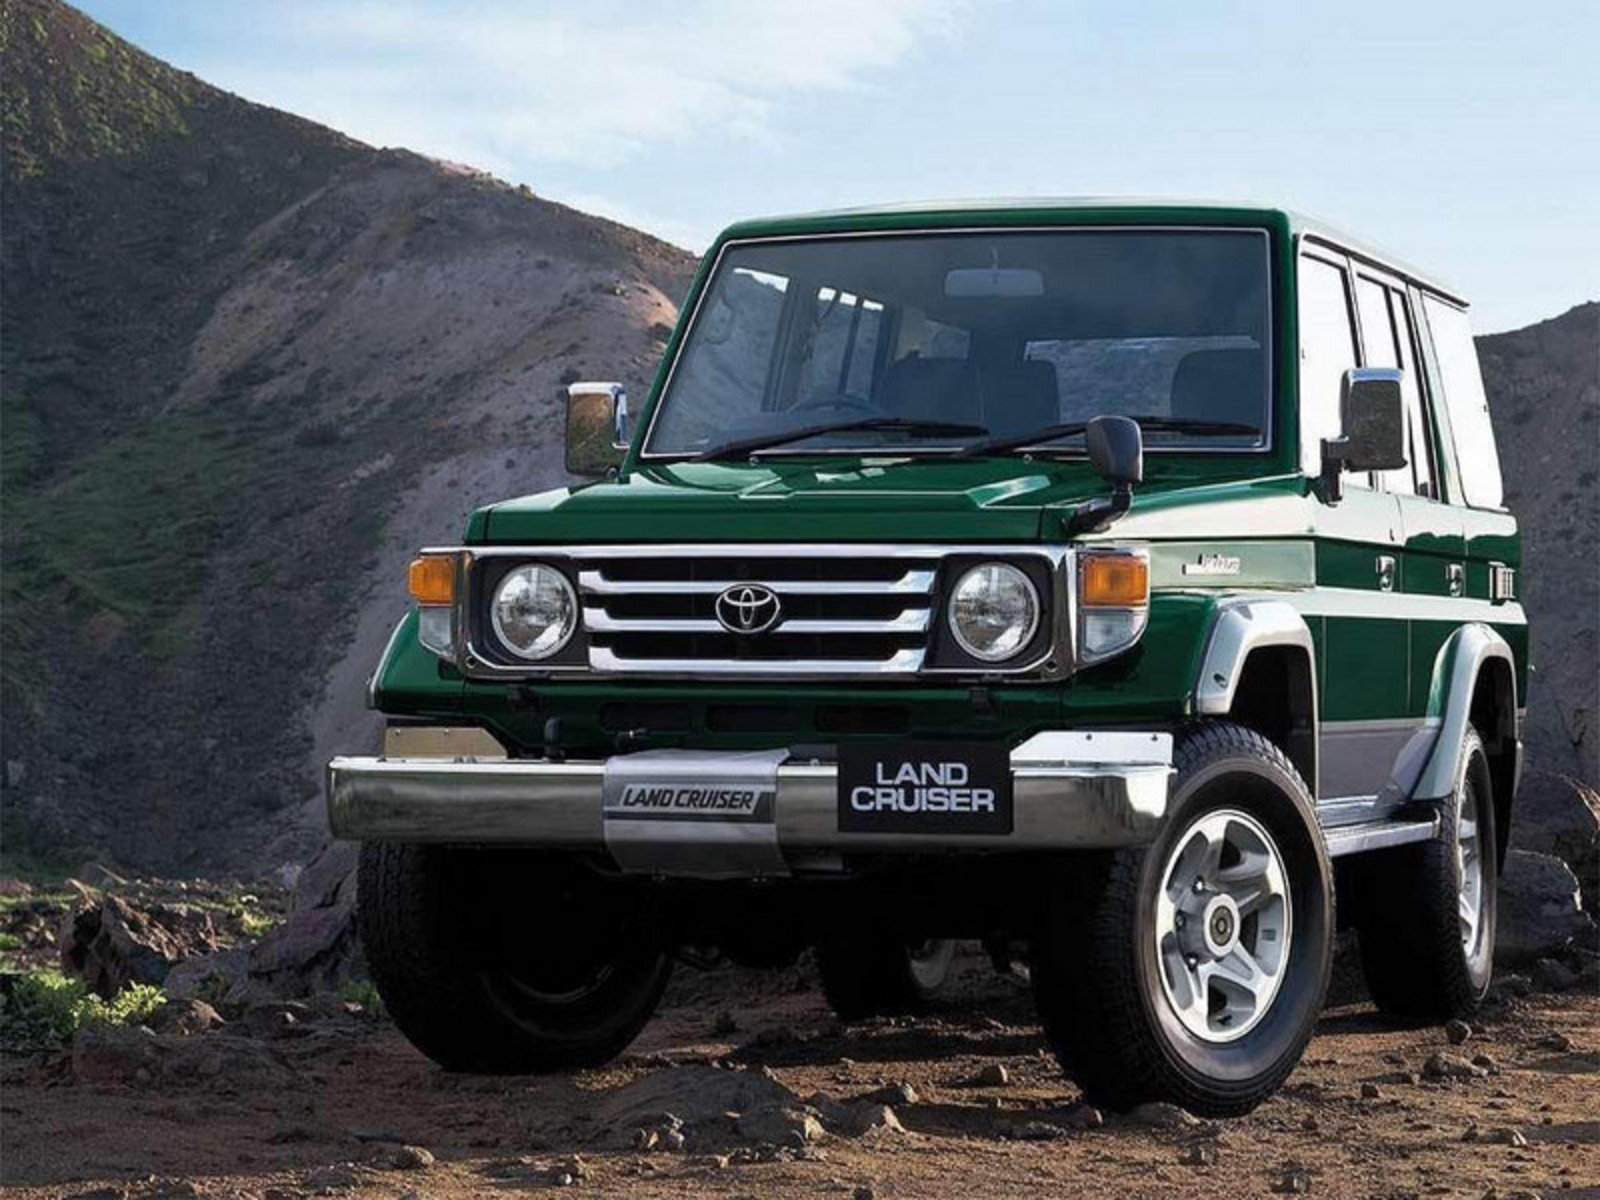 Fj Cruiser Oil Filter Top Car Release 2019 2020 Fuel Location 1984 Toyota Land 70 Series Review Gallery